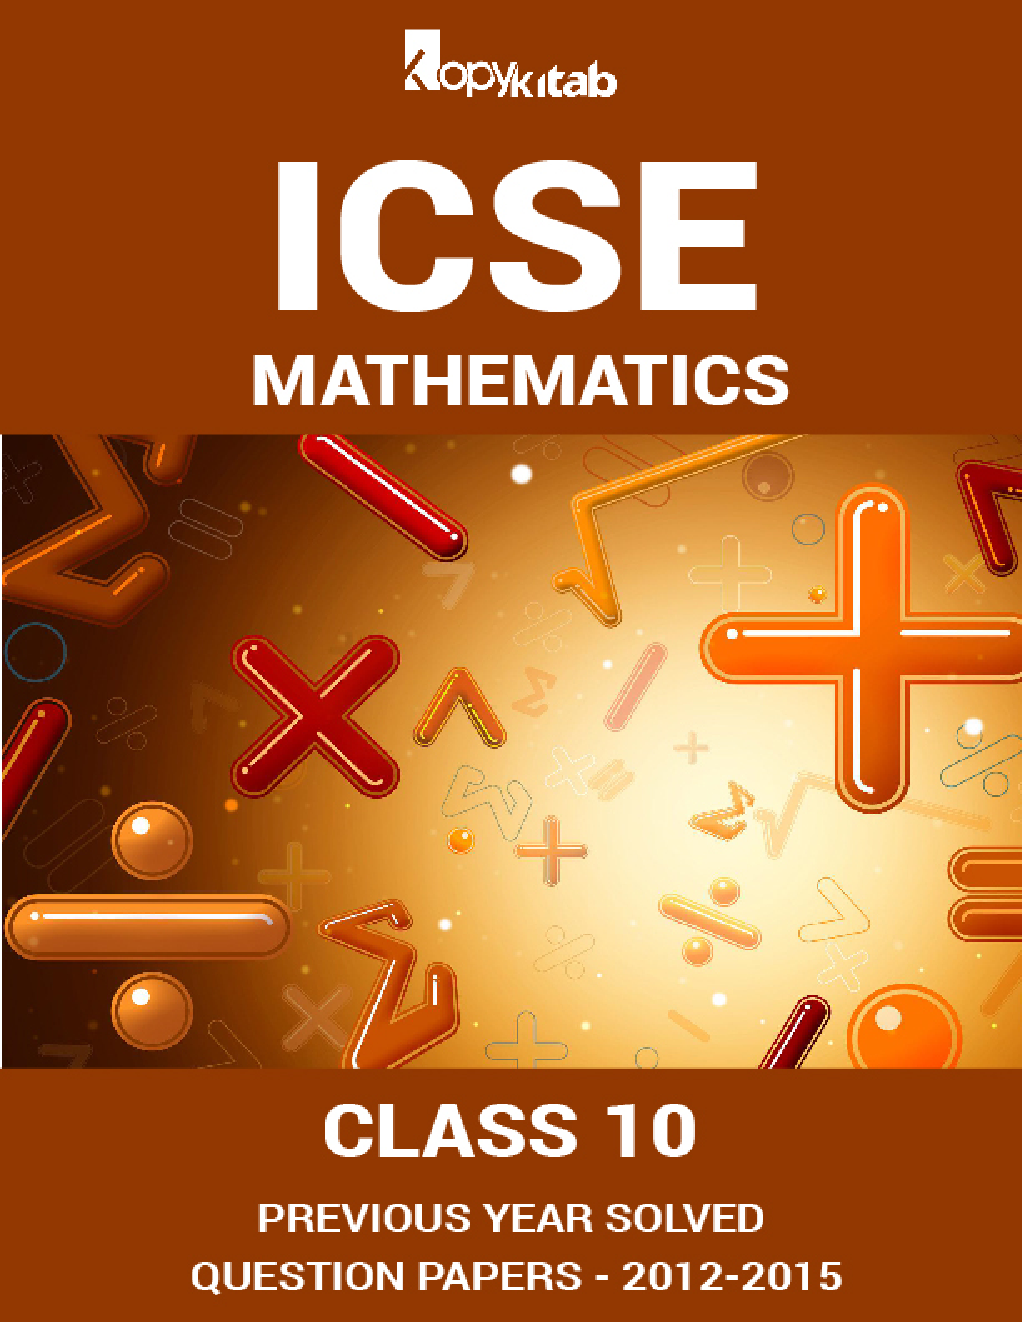 ICSE Previous Year Solved Question Papers For Class 10 Mathematics 2012-2015 - Page 1